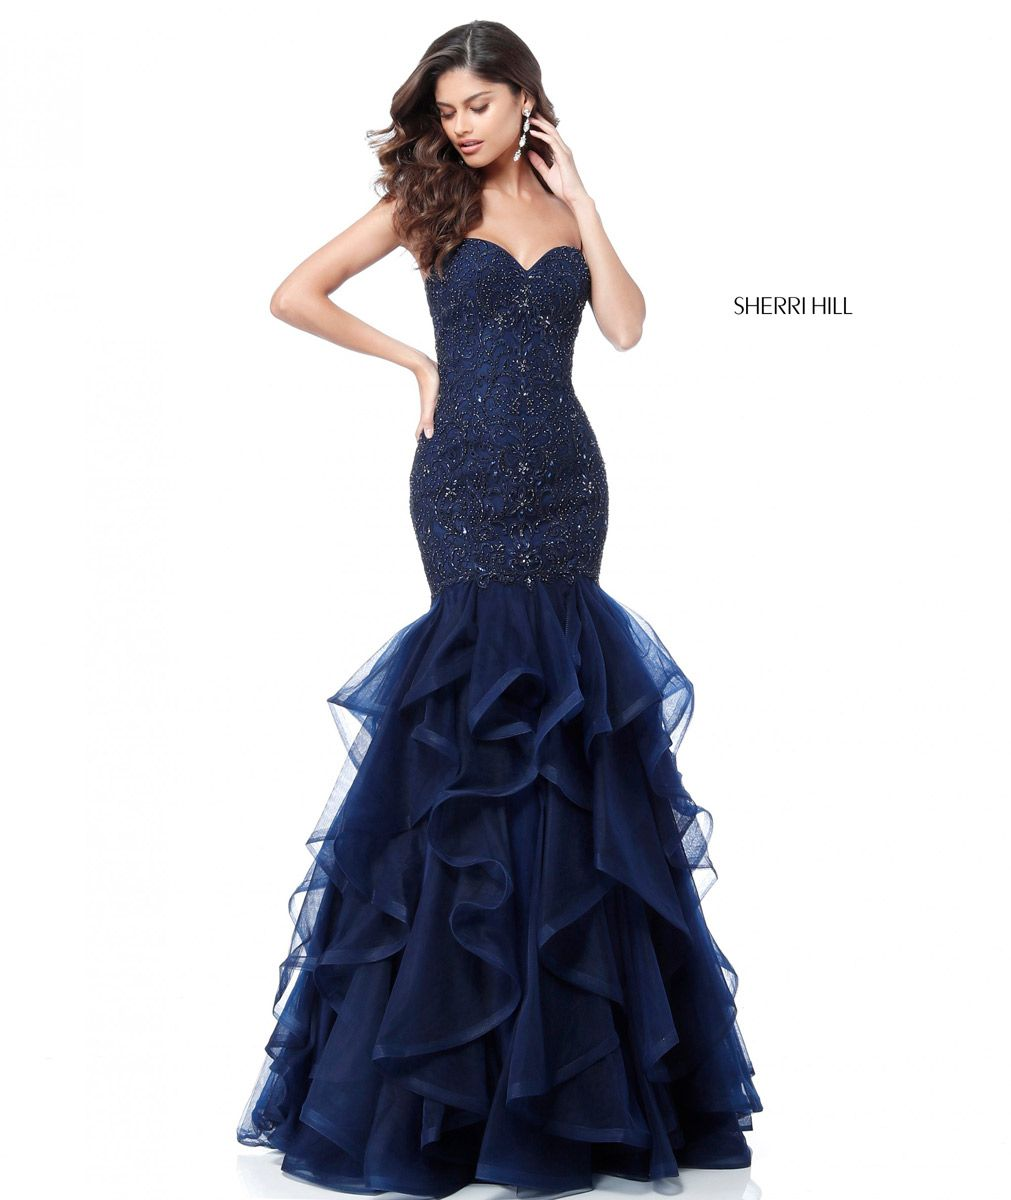 Sherri Hill 51706 Ruffle Mermaid Prom Dress French Novelty